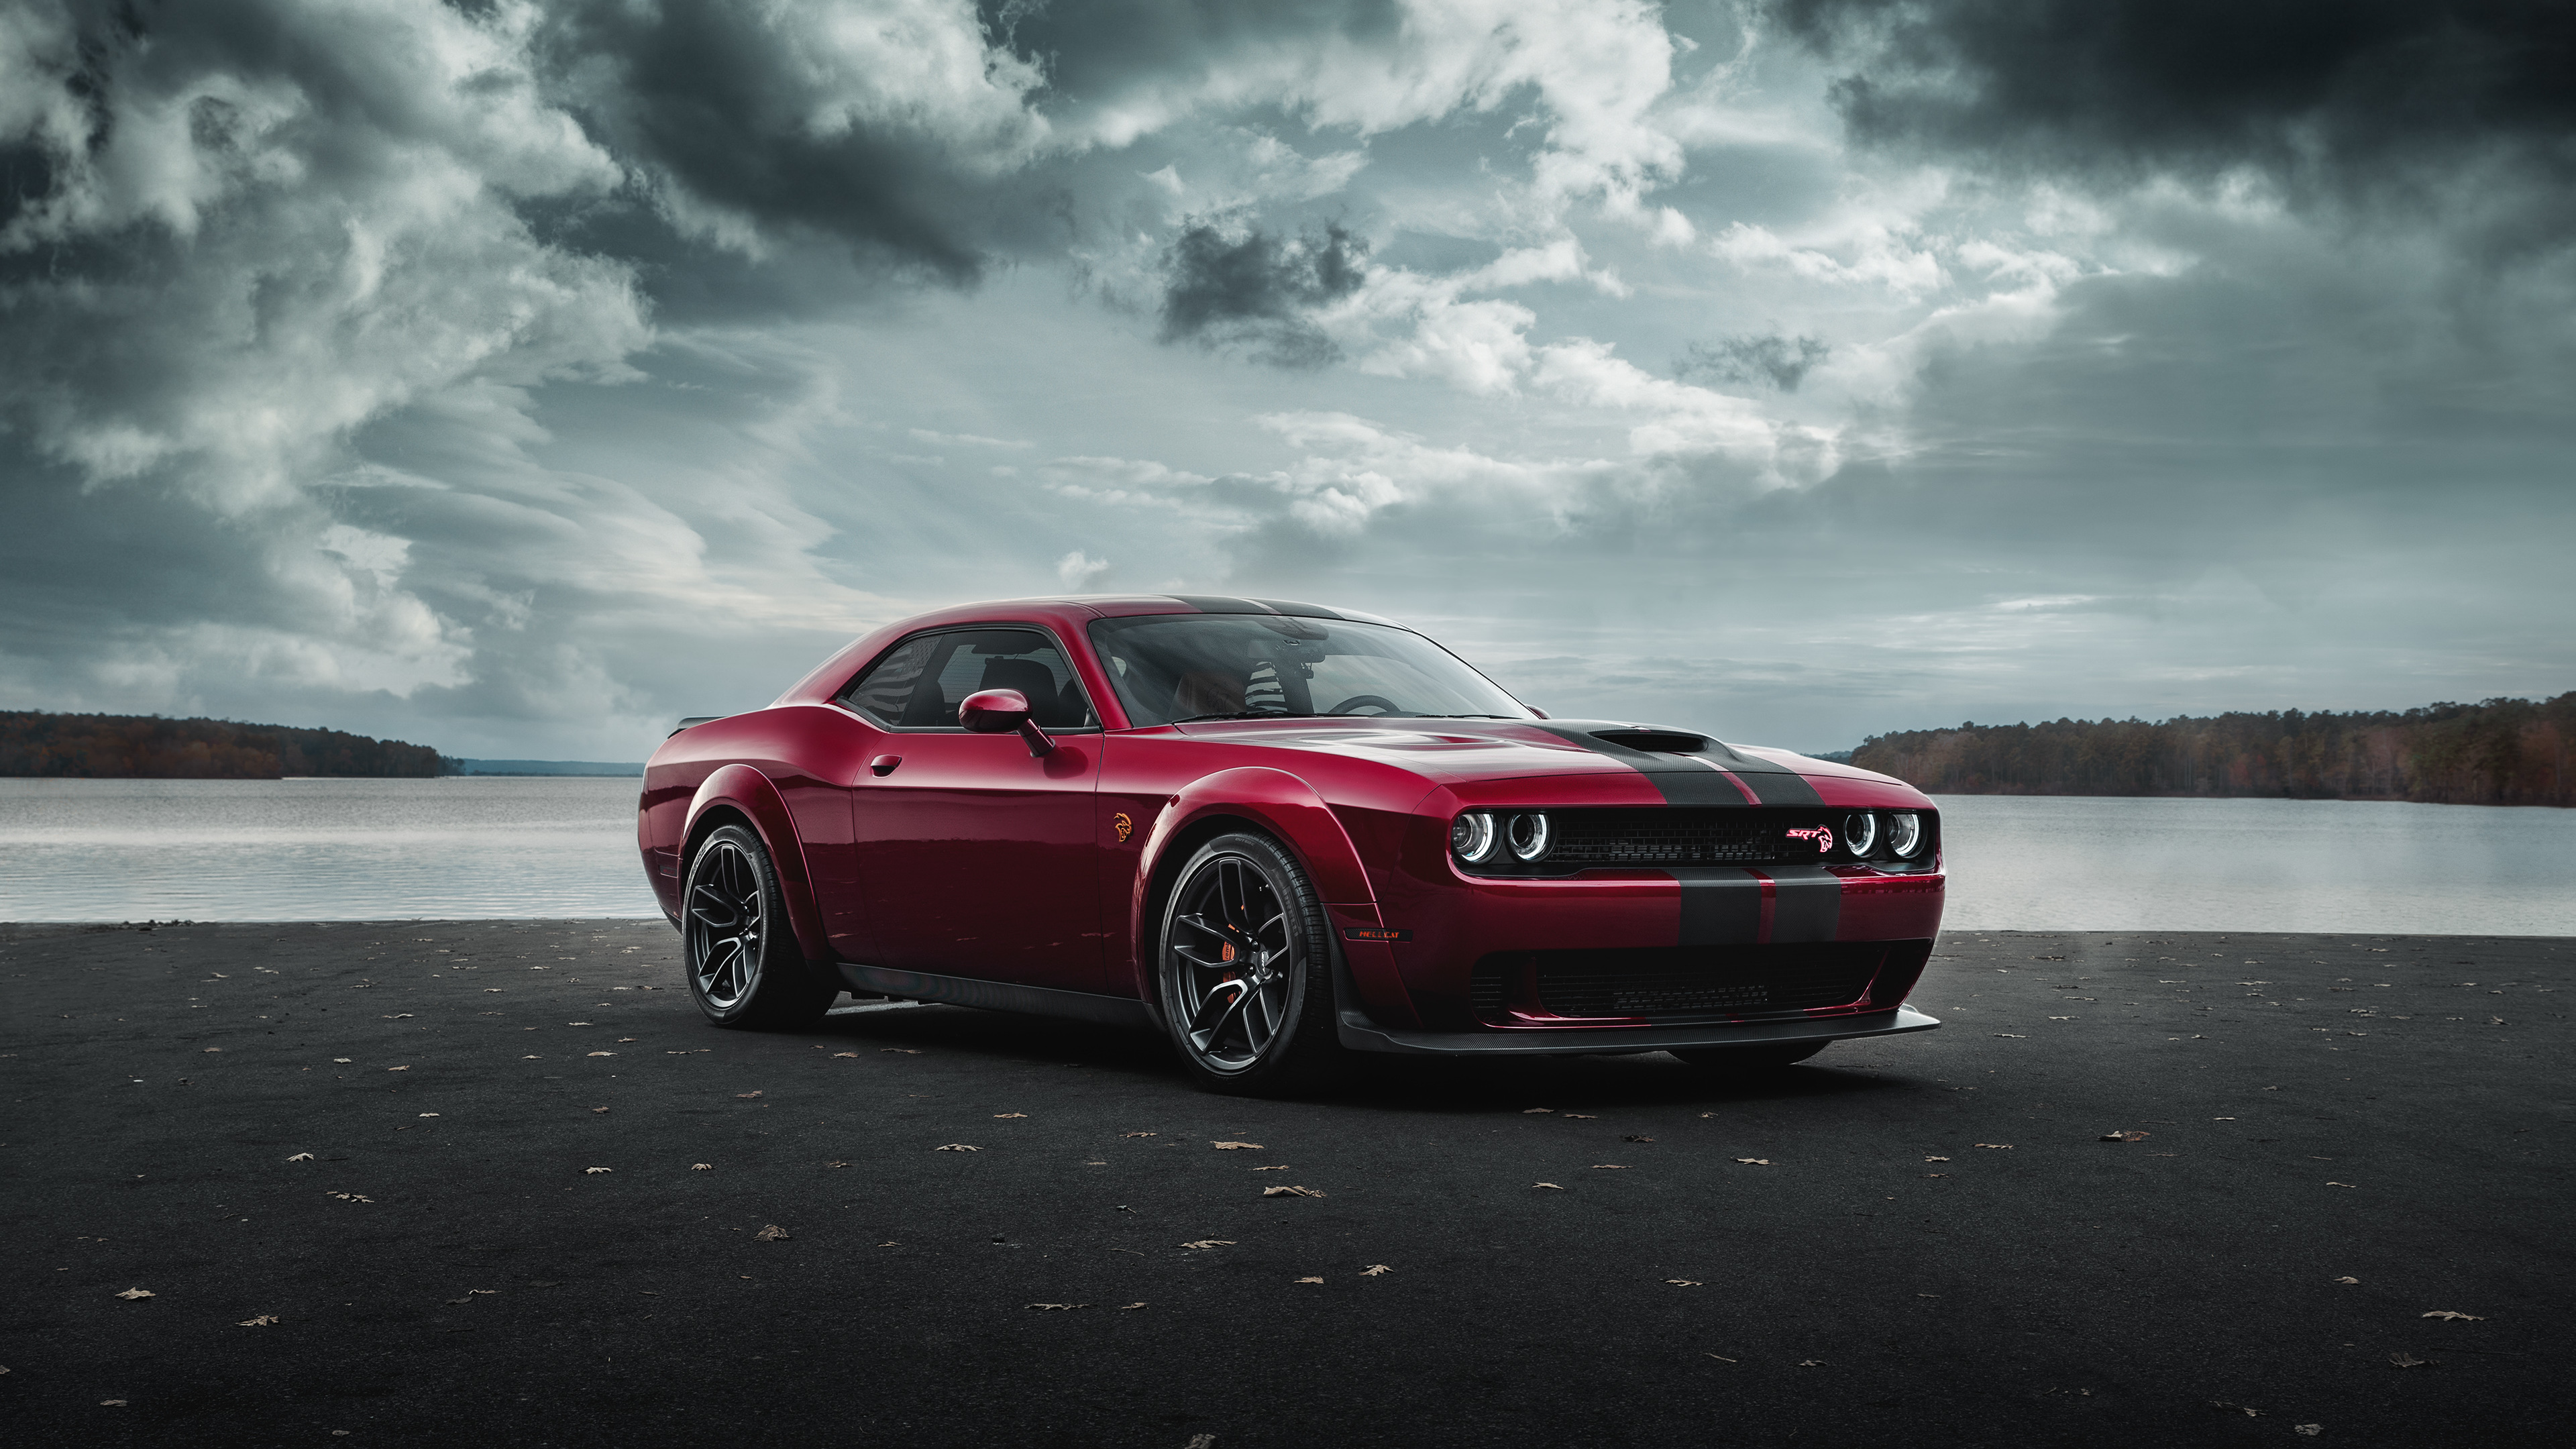 widebody dodge hellcat 1572660912 - Widebody Dodge Hellcat - hd-wallpapers, dodge challenger wallpapers, dodge challenger srt hellcat widebody wallpapers, behance wallpapers, 4k-wallpapers, 2019 cars wallpapers